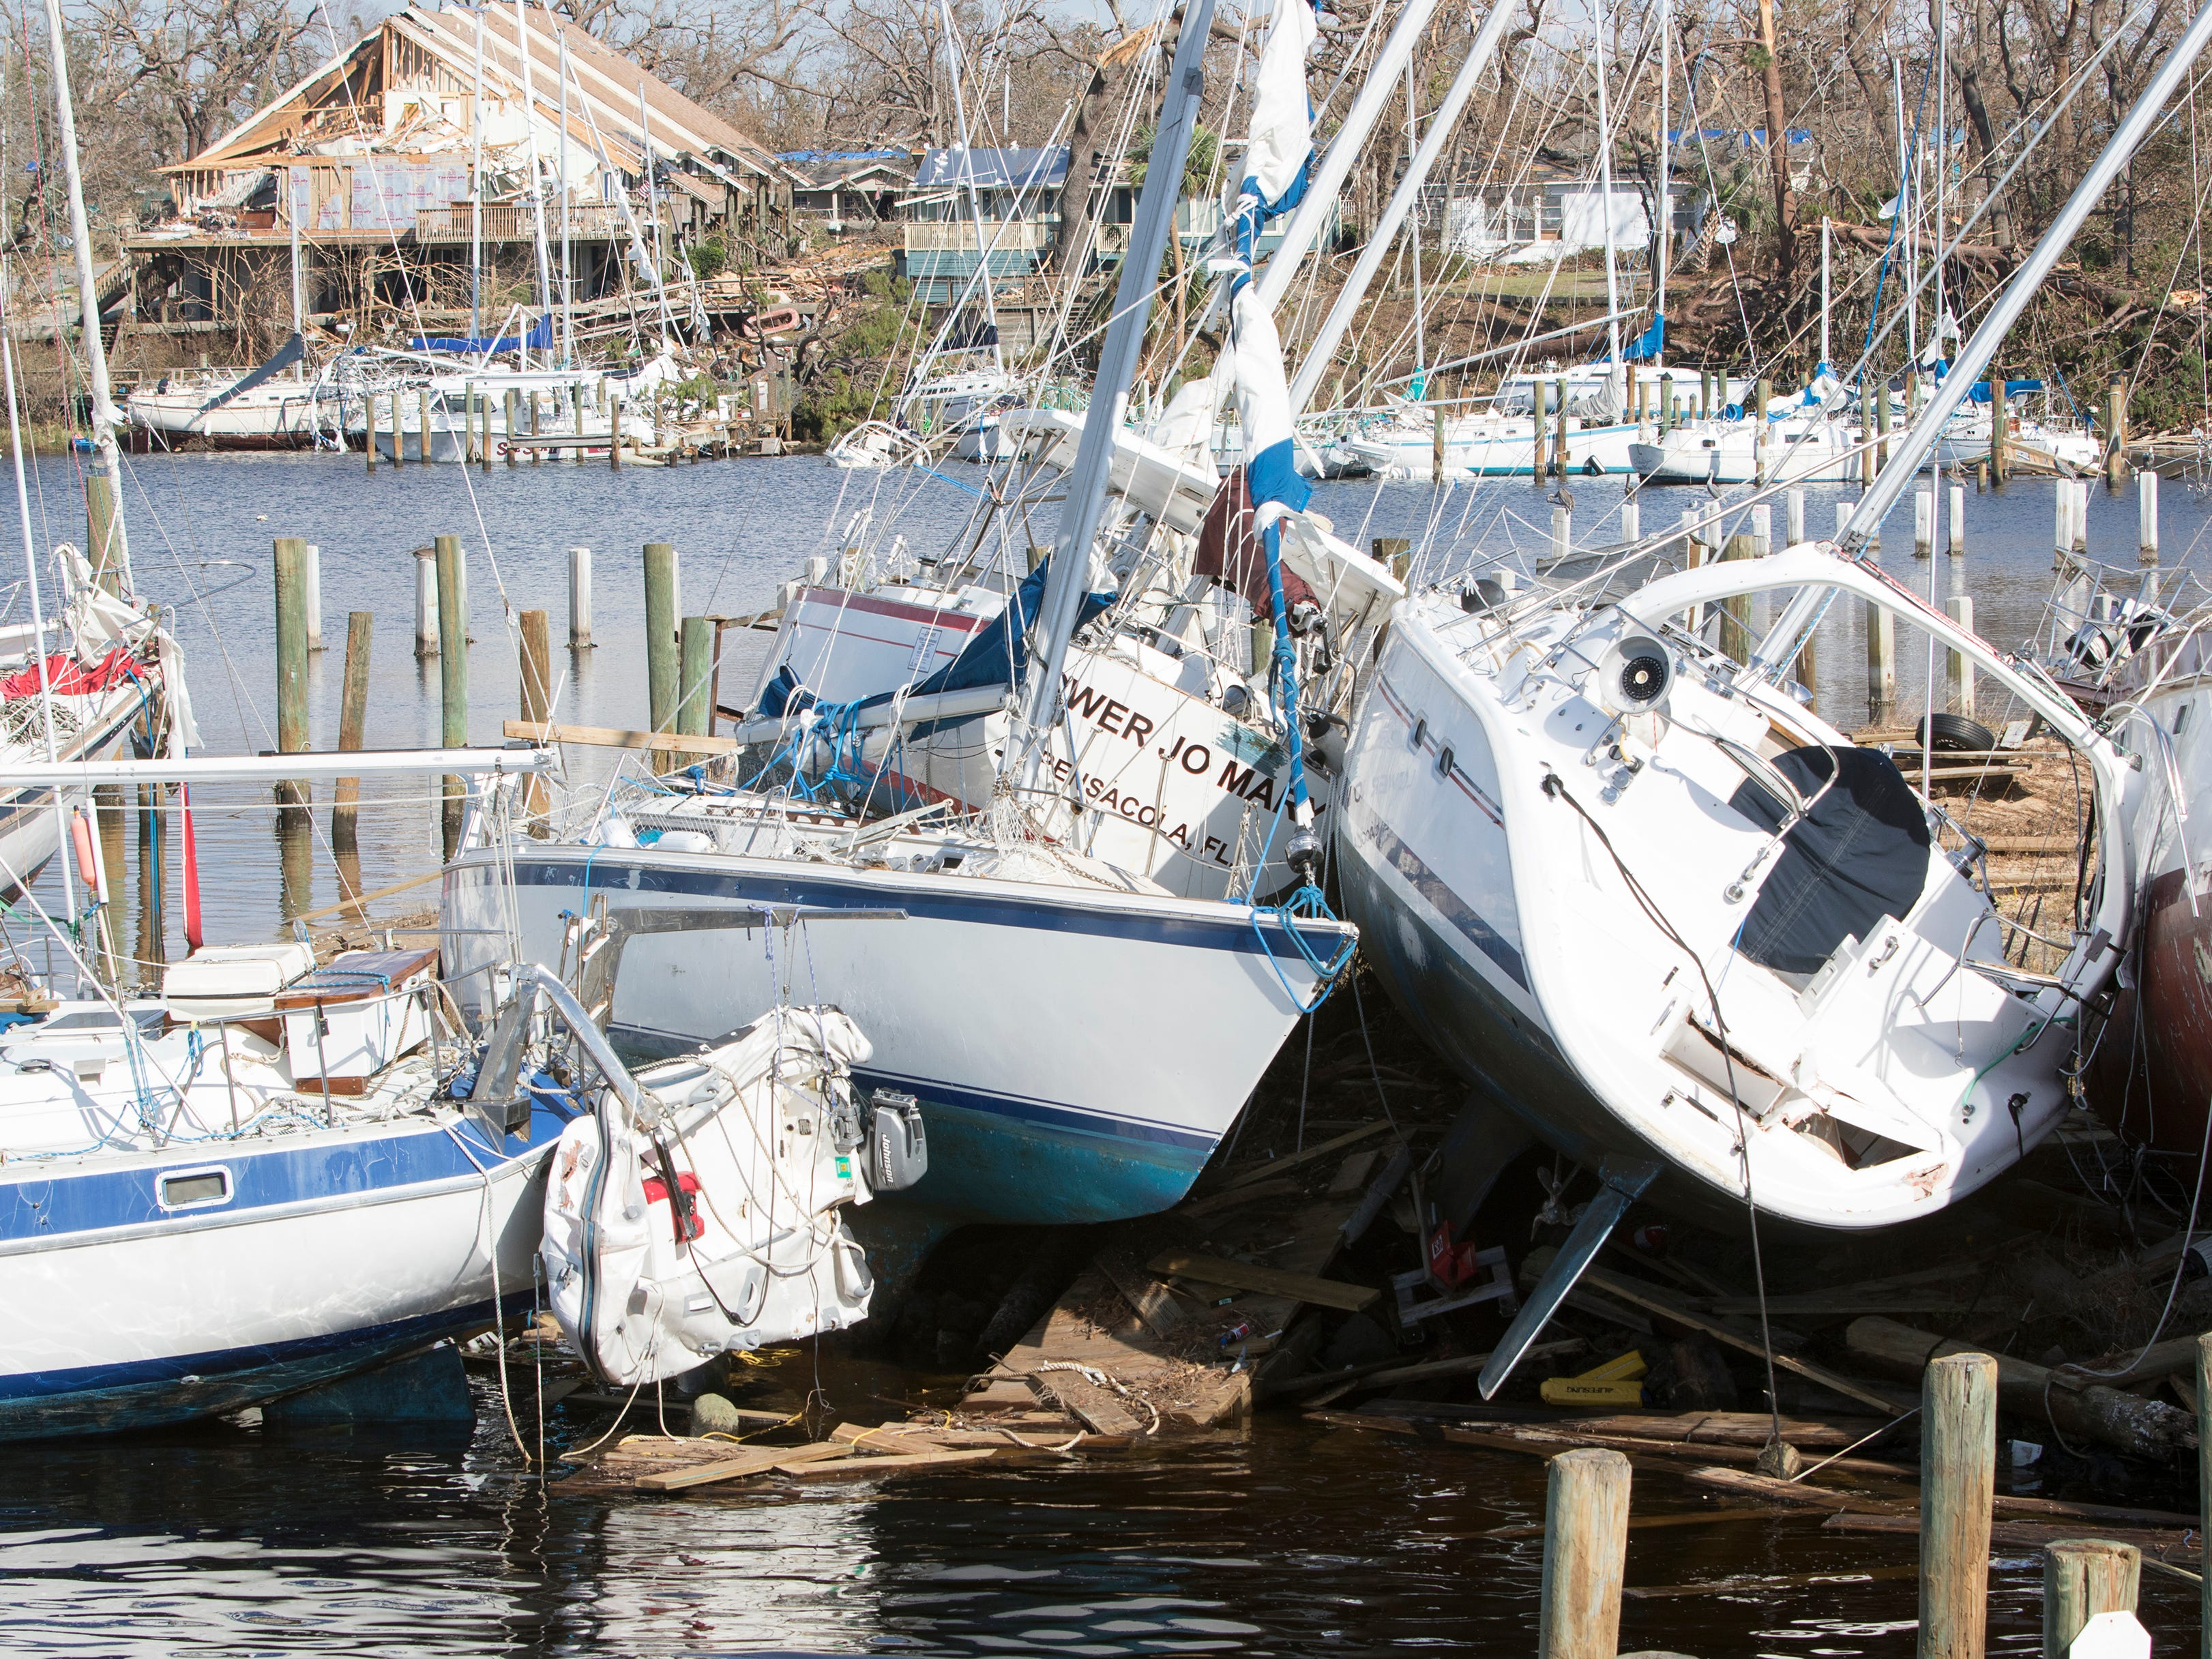 Boats lay stacked on each other in Massalina Bayou after Hurricane Michael in Panama City, Fla. on Oct. 18, 2018.